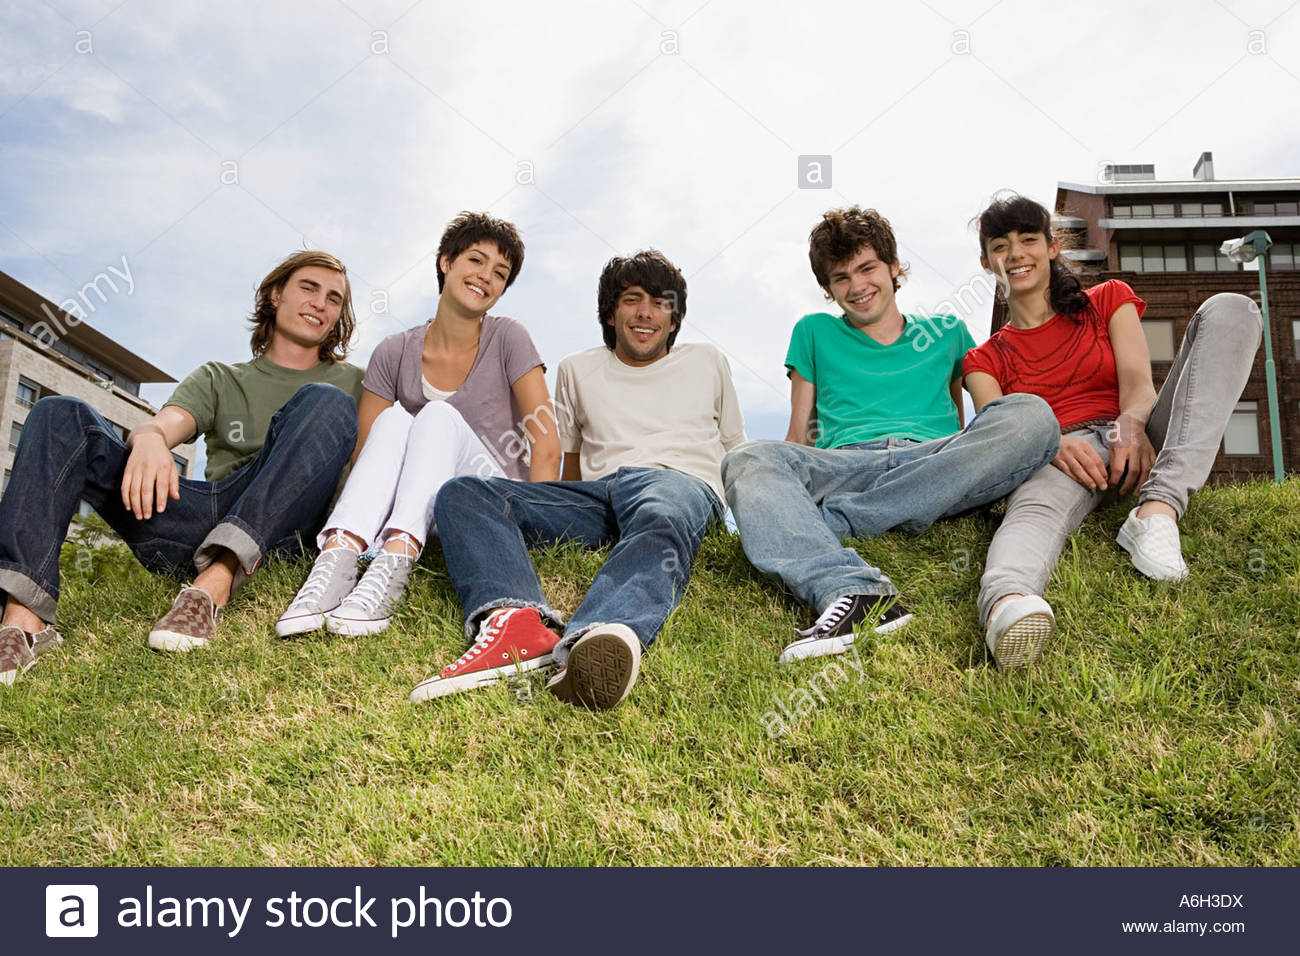 Friends sitting on grass verge - Stock Image